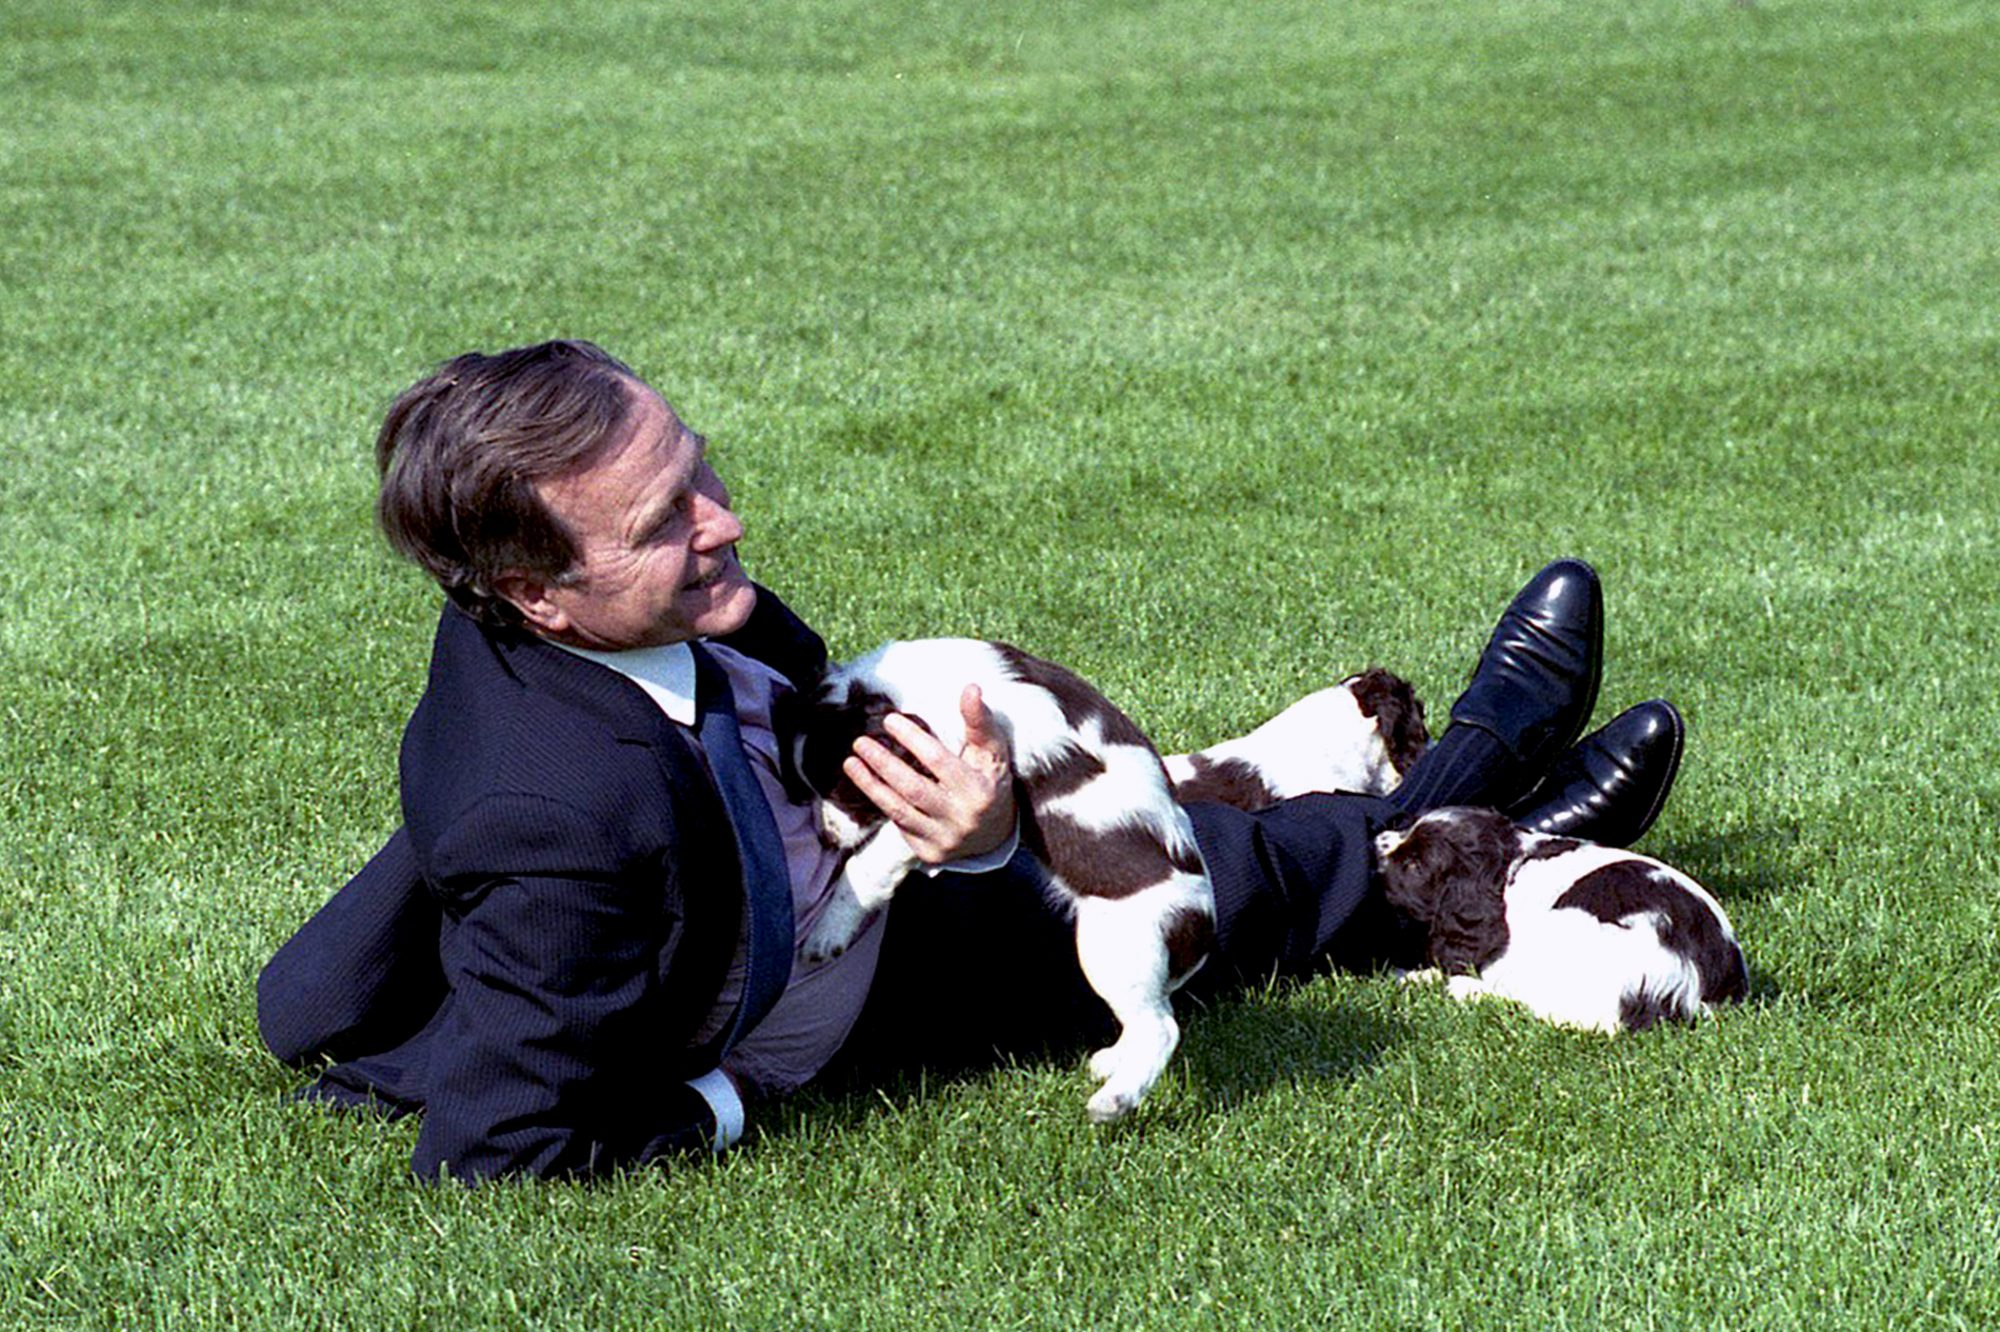 Photograph of George H.W. Bush laying on lawn and cuddling three puppies